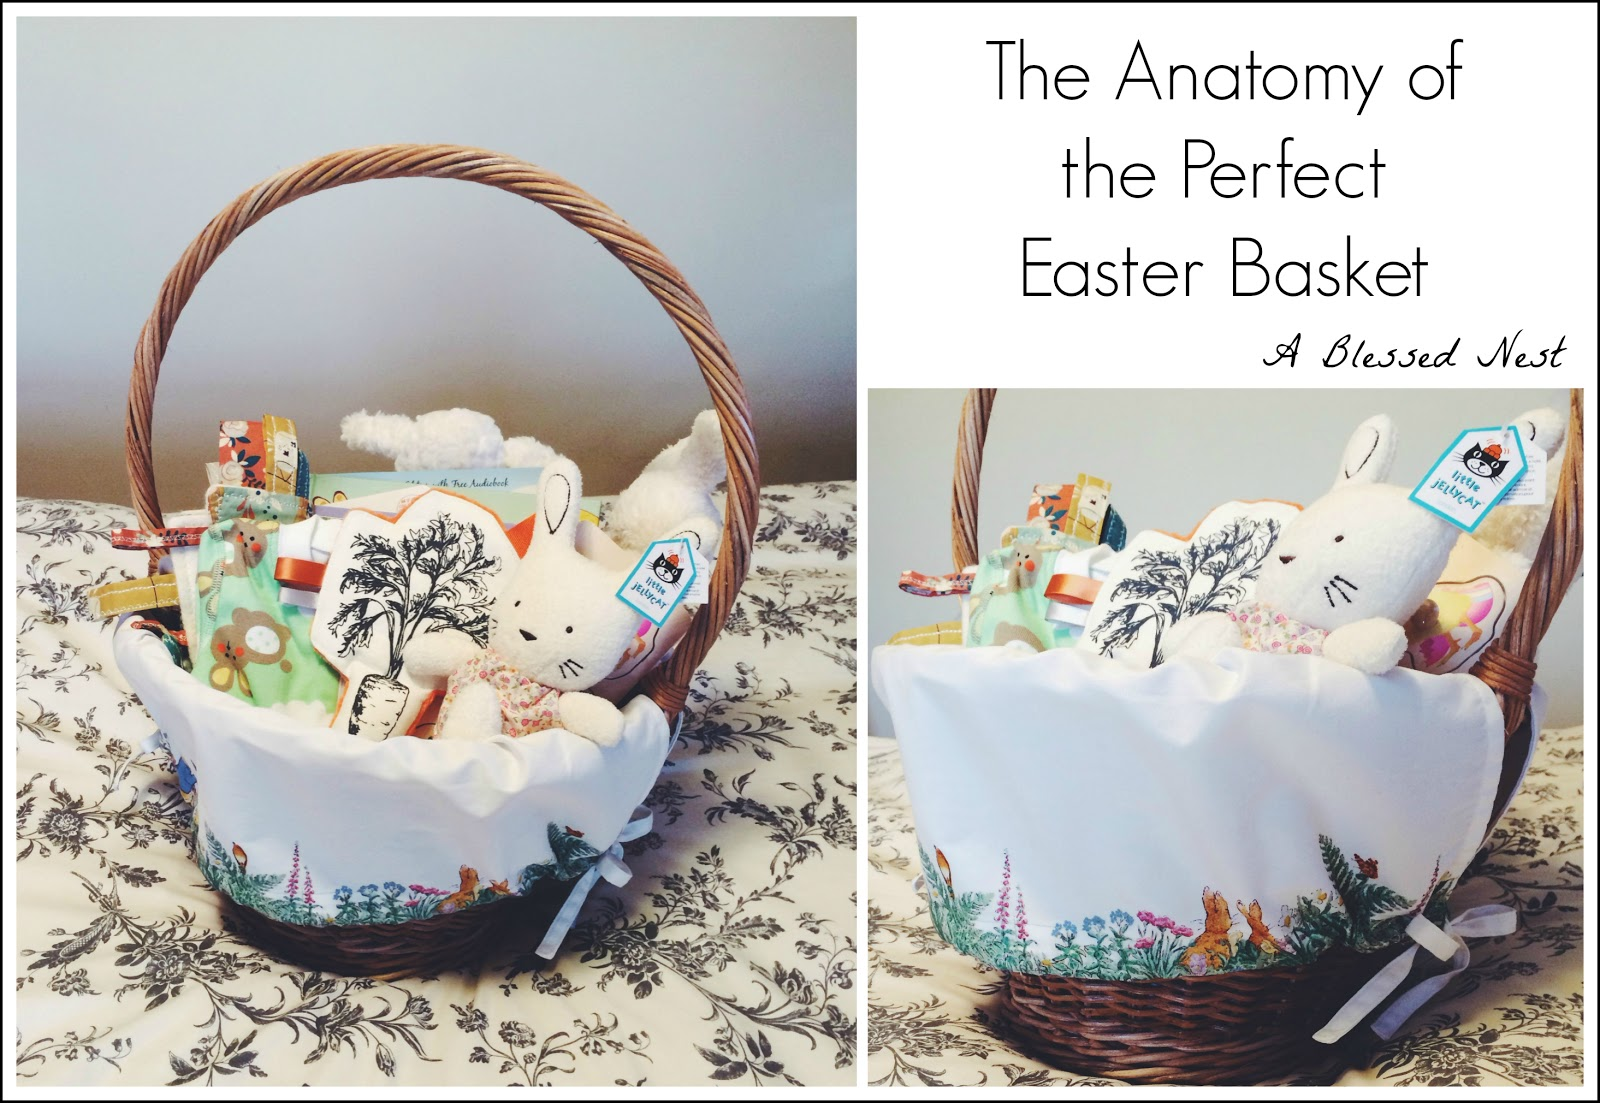 A blessed nest the easter basket i thought it would be fun to share a list of what is going in vs easter basket this year incase you are still looking for treats to fill your little ones negle Gallery